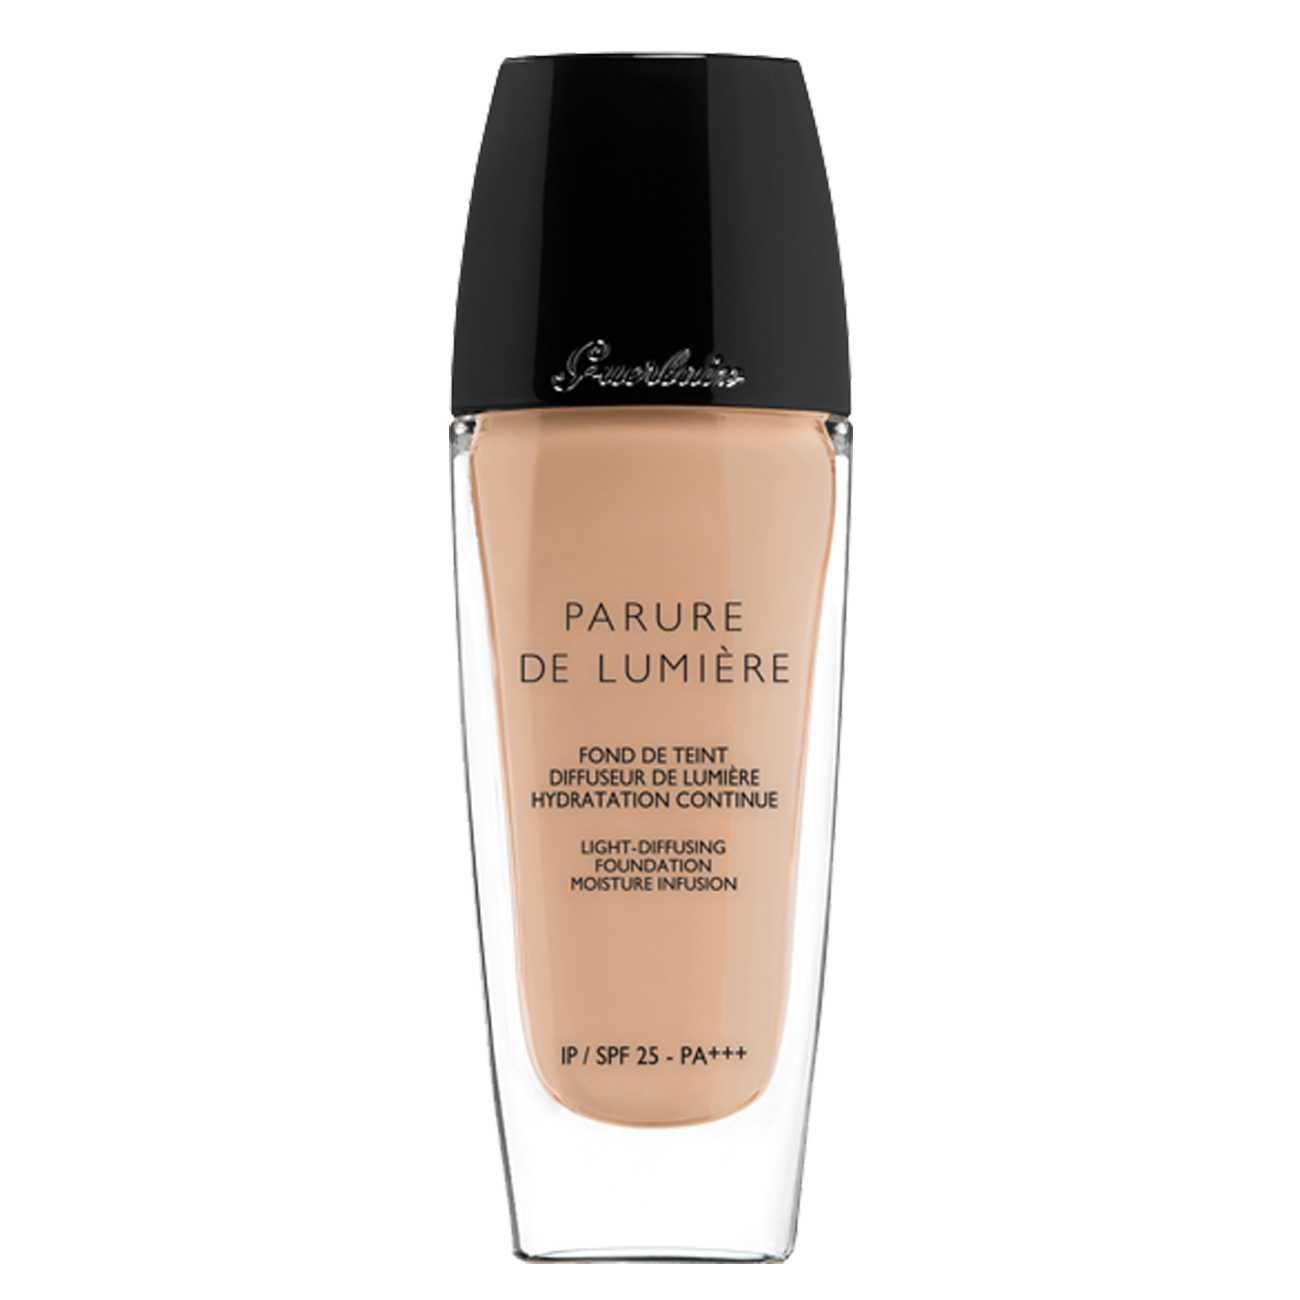 PARURE DE LUMIERE 30 ML Beige Naturel 3 imagine produs